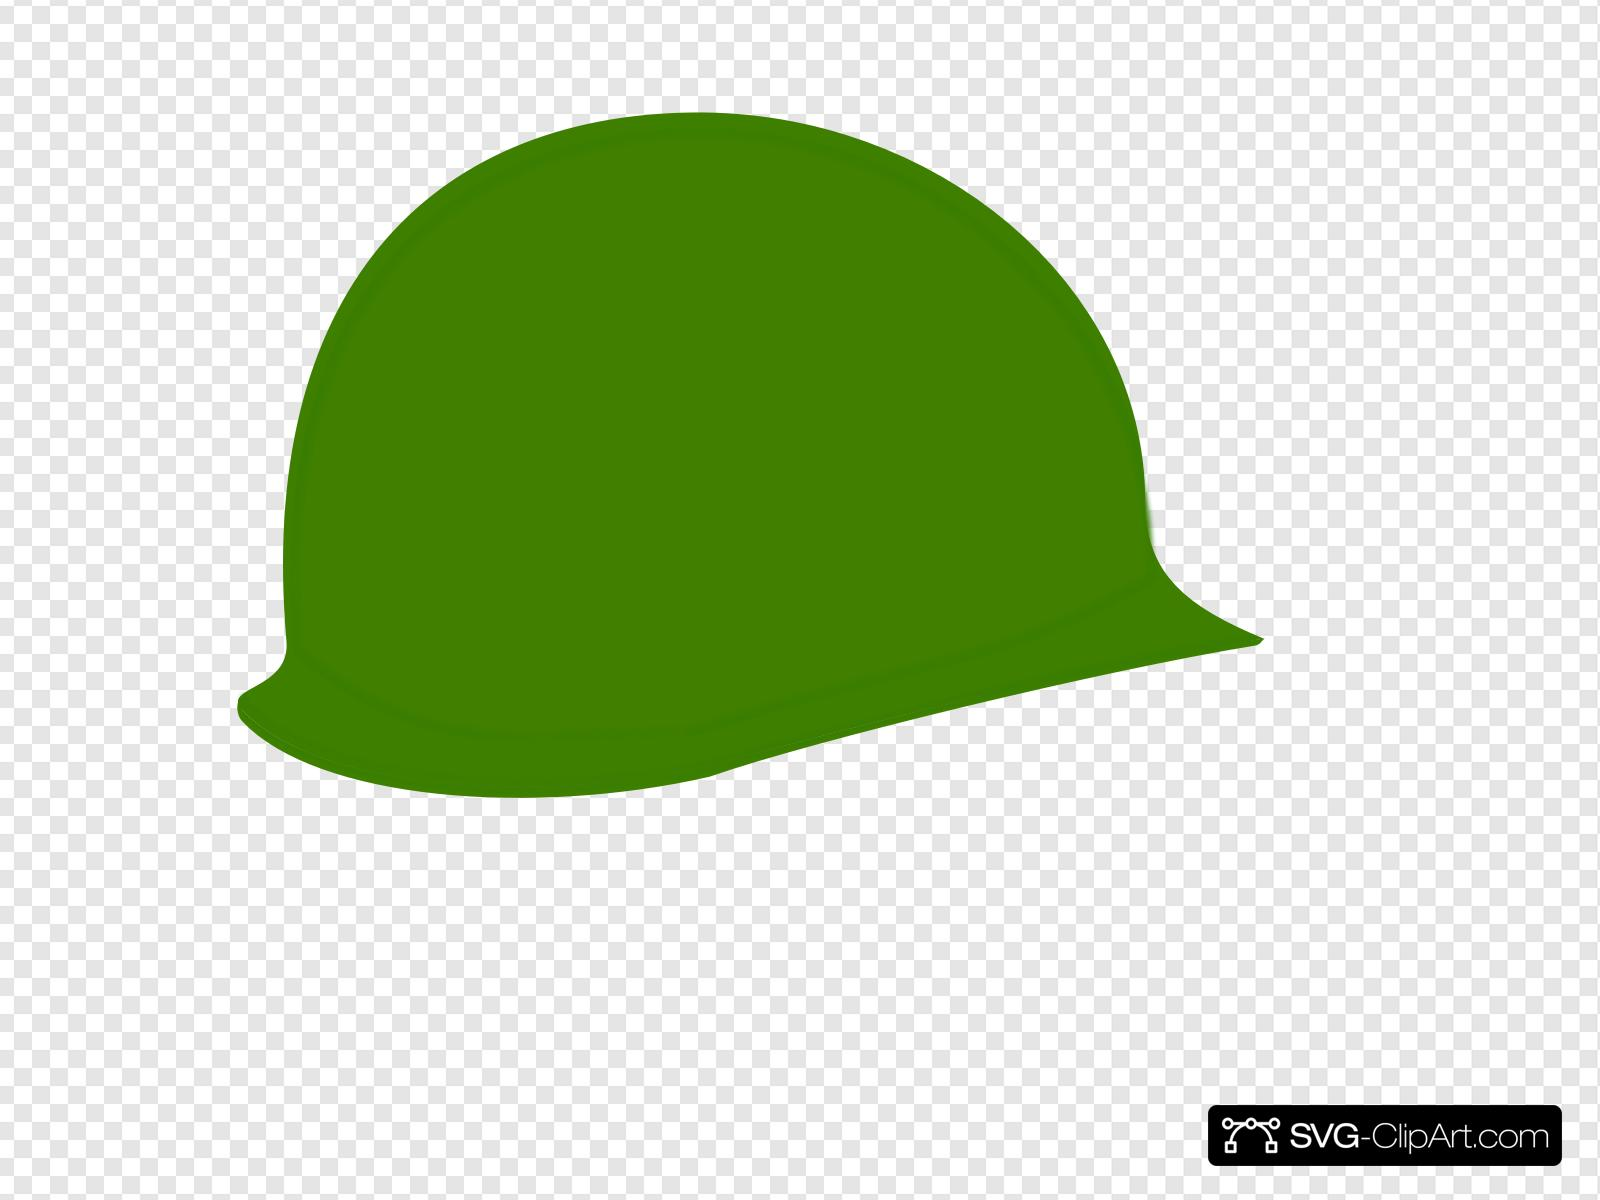 Green Soldier Helmet Clip art, Icon and SVG.